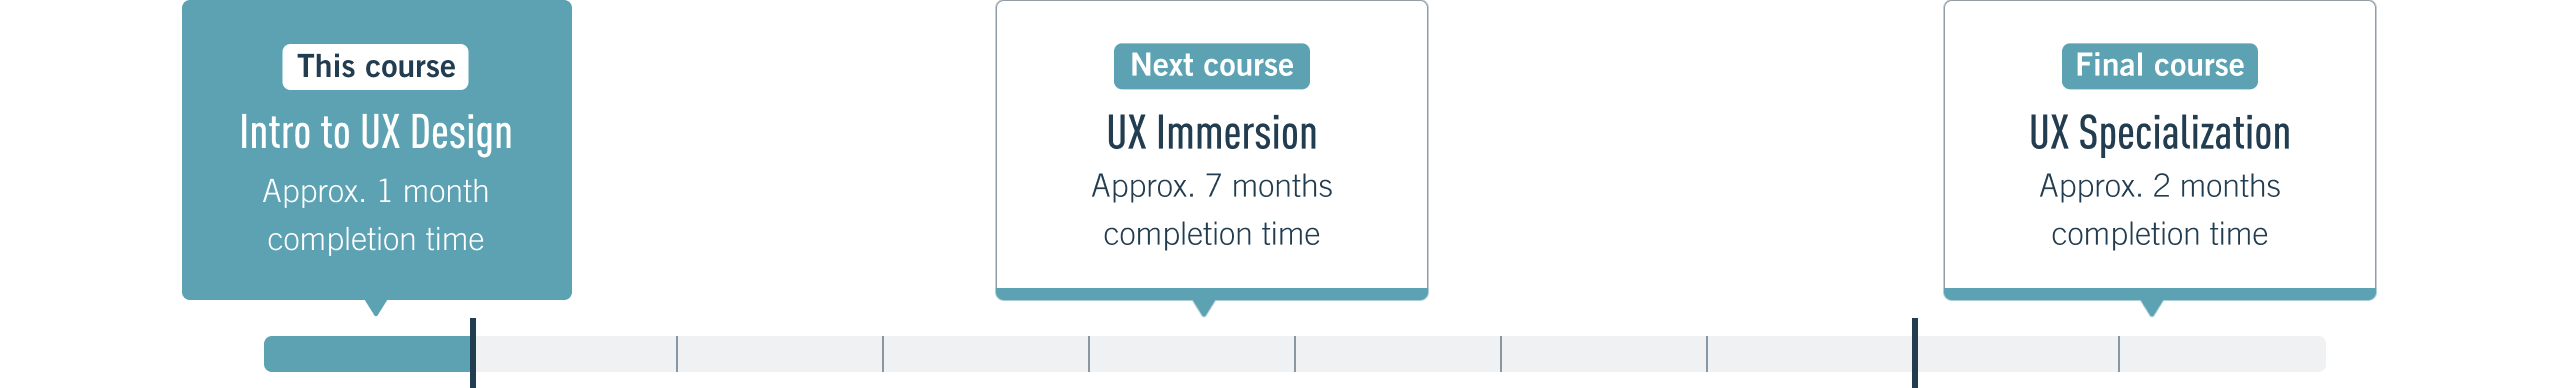 Learn The Fundamentals Of Ux Design In This Mentored Course